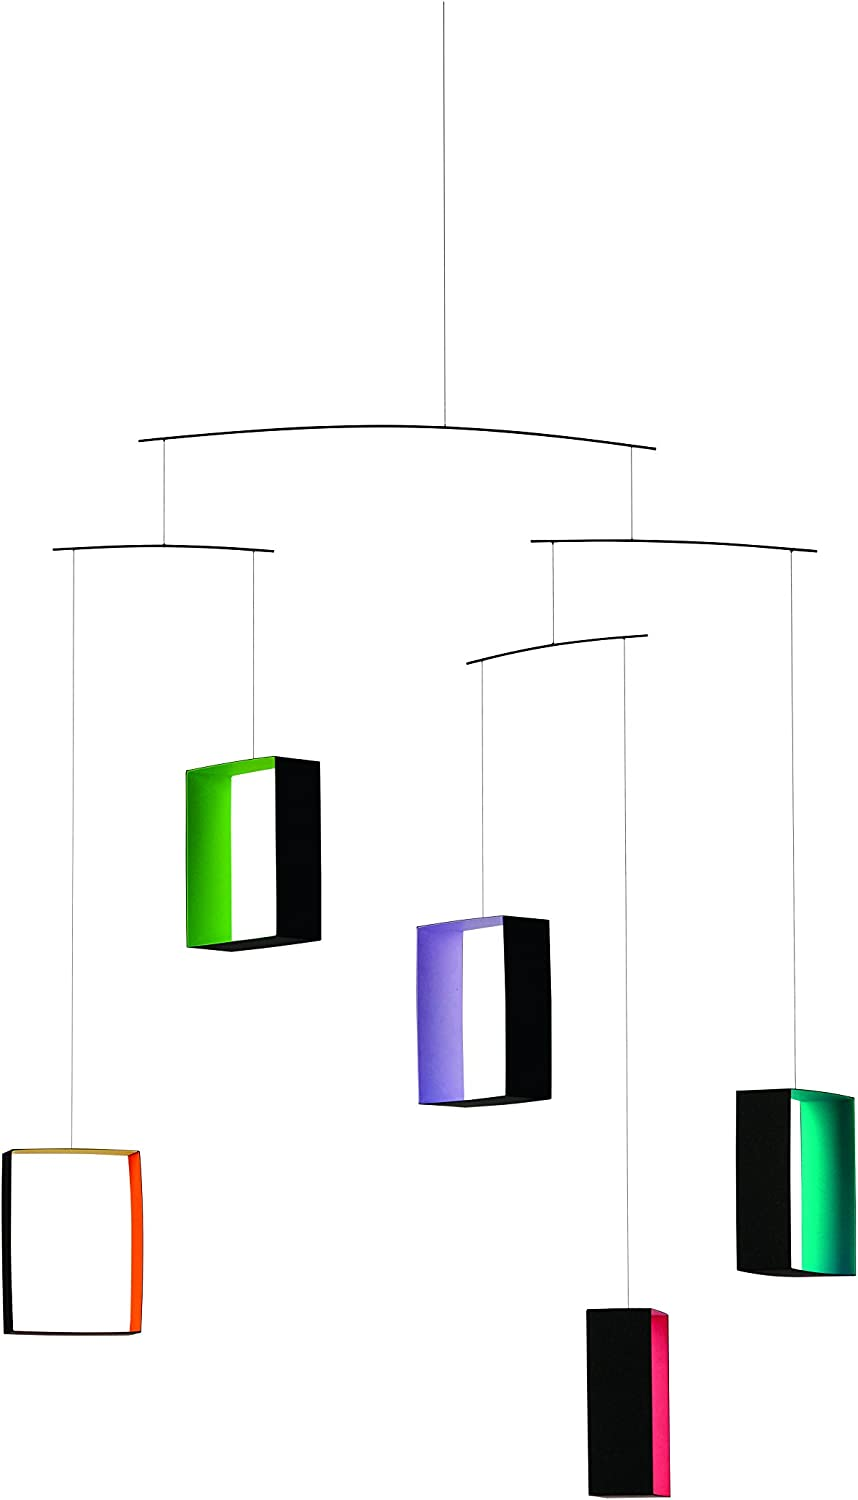 Windows, colord Views Hanging Mobile - 26 Inches - Handmade in Denmark by Flensted